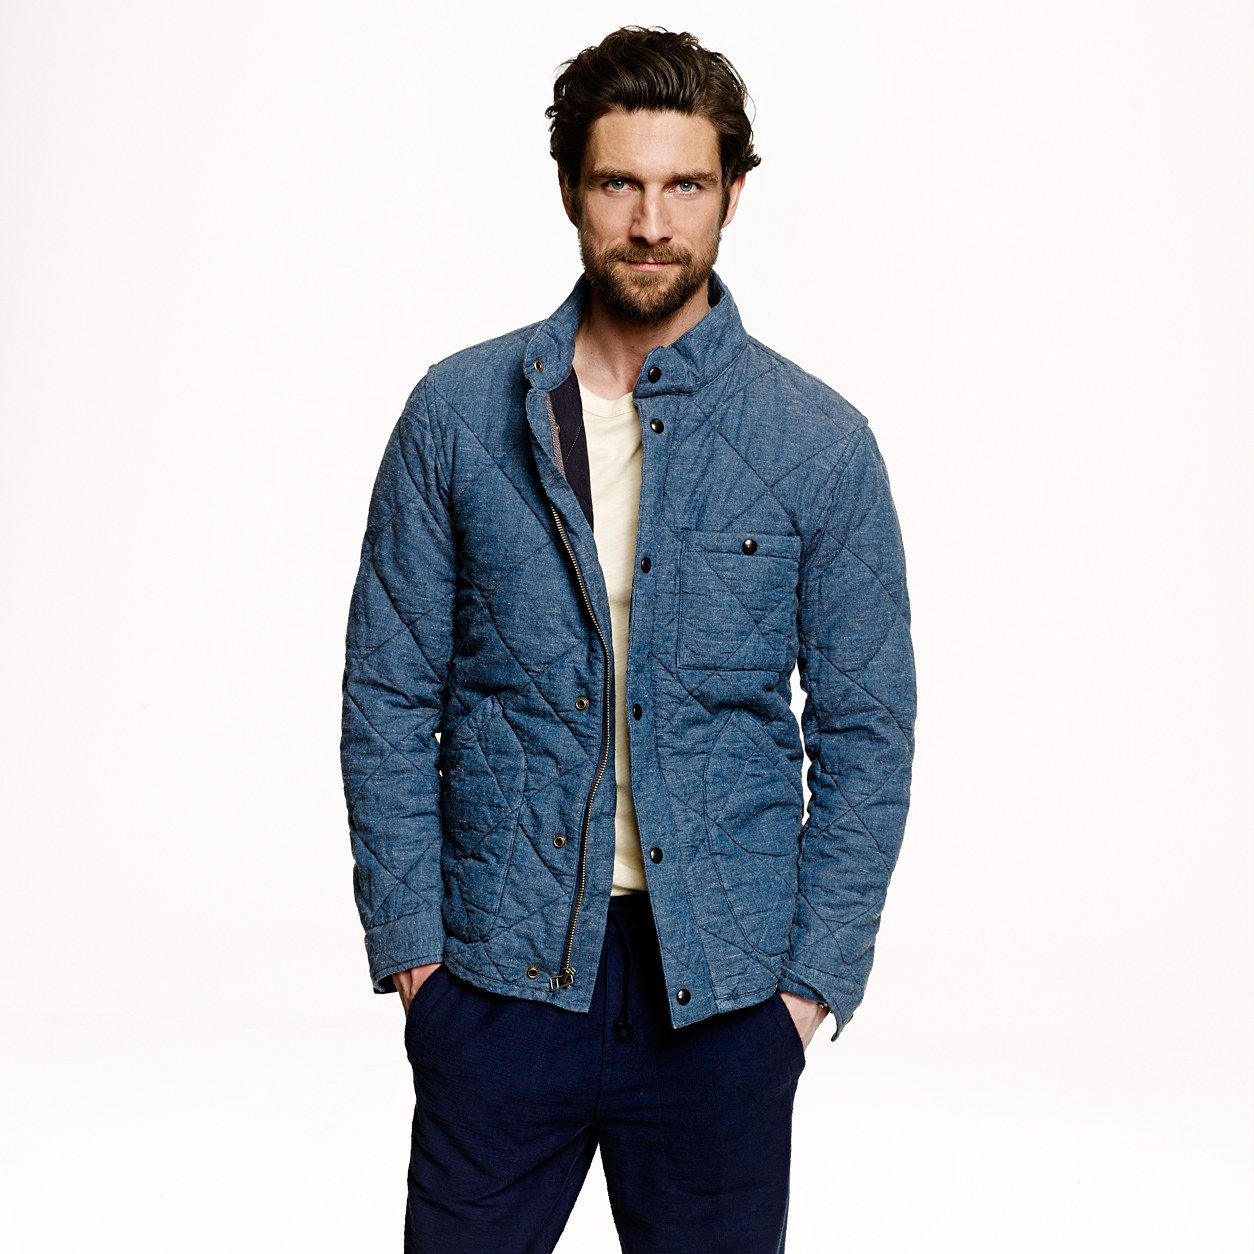 Broadmoor Quilted Jacket In Japanese Chambray Jackets Men Fashion Quilted Jacket Mens Jackets